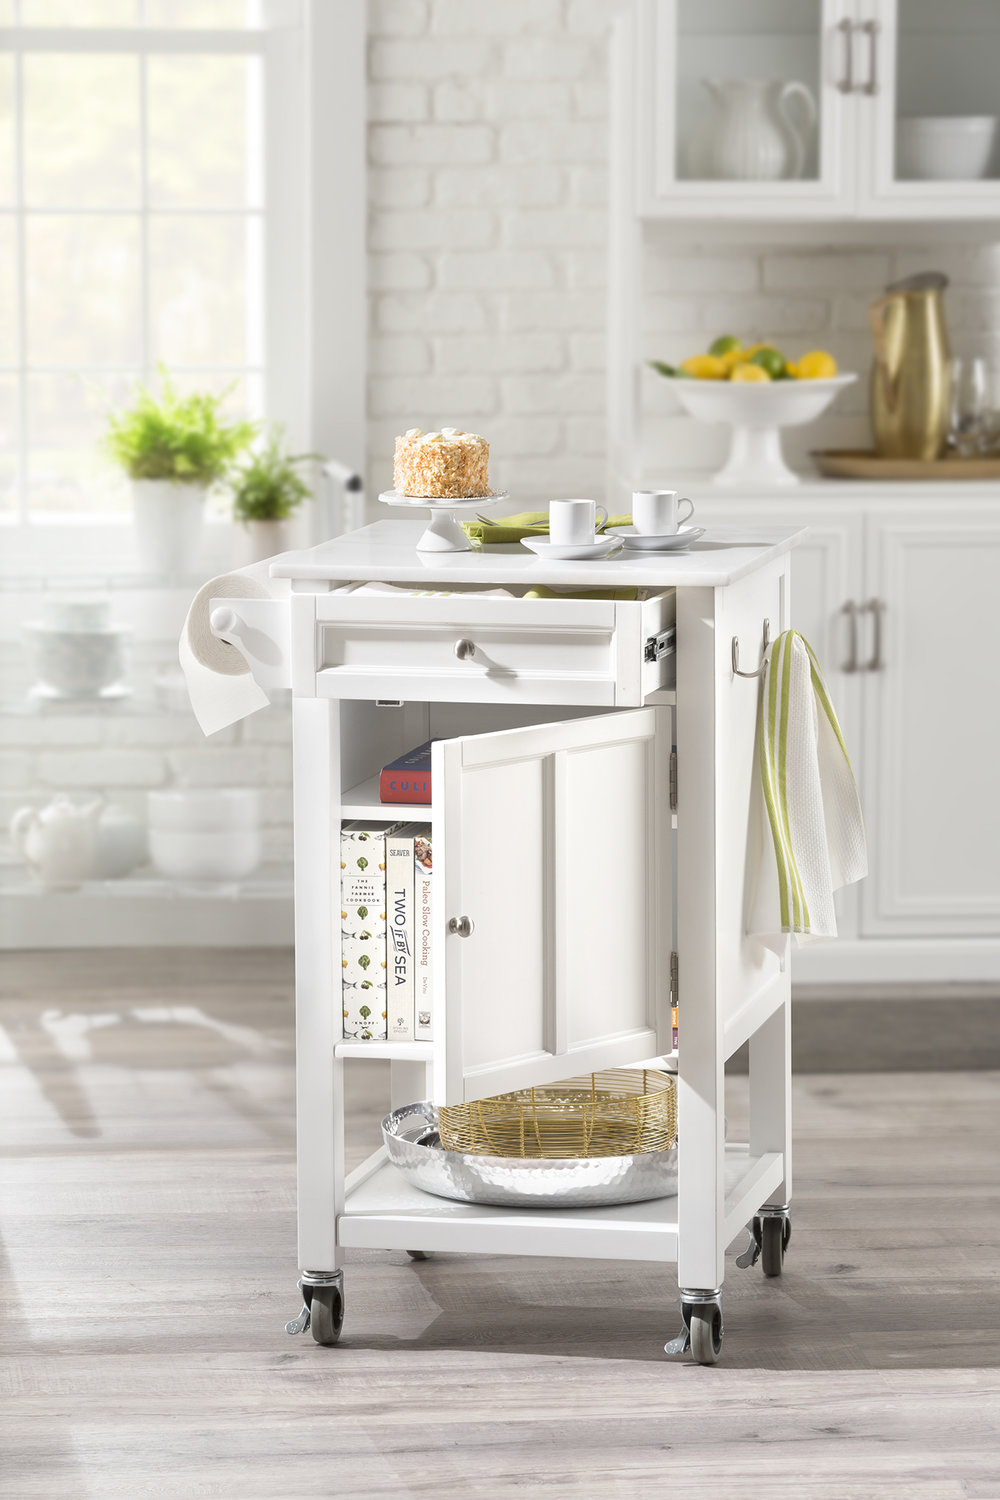 583327-mobile kitchen cart w marble top open.jpg